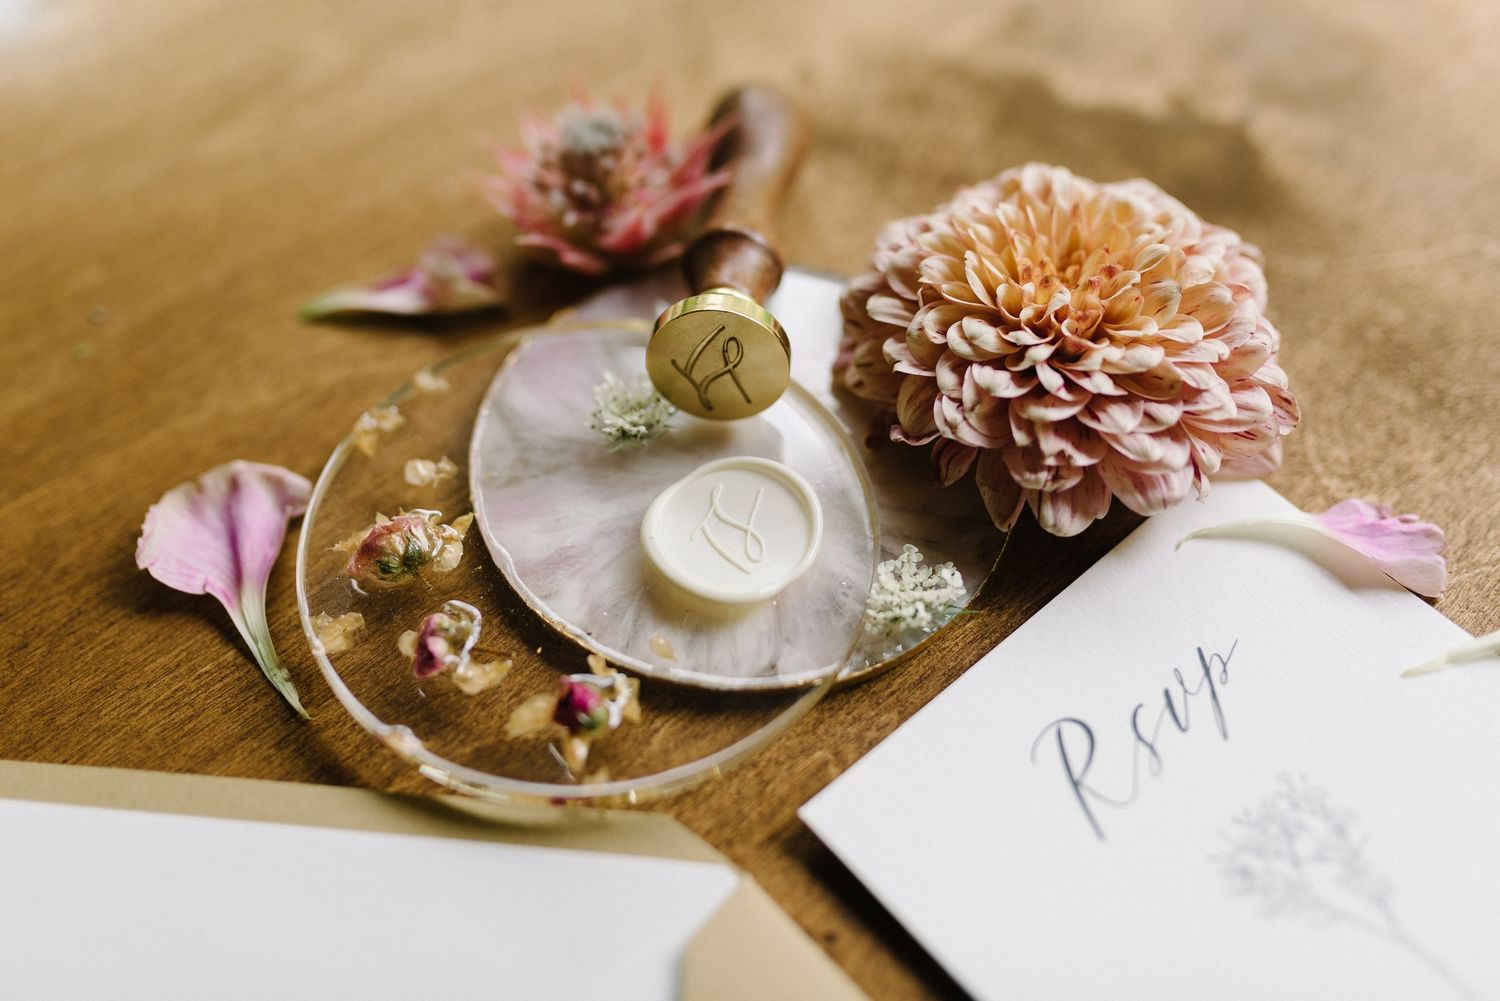 sealing wax wedding details